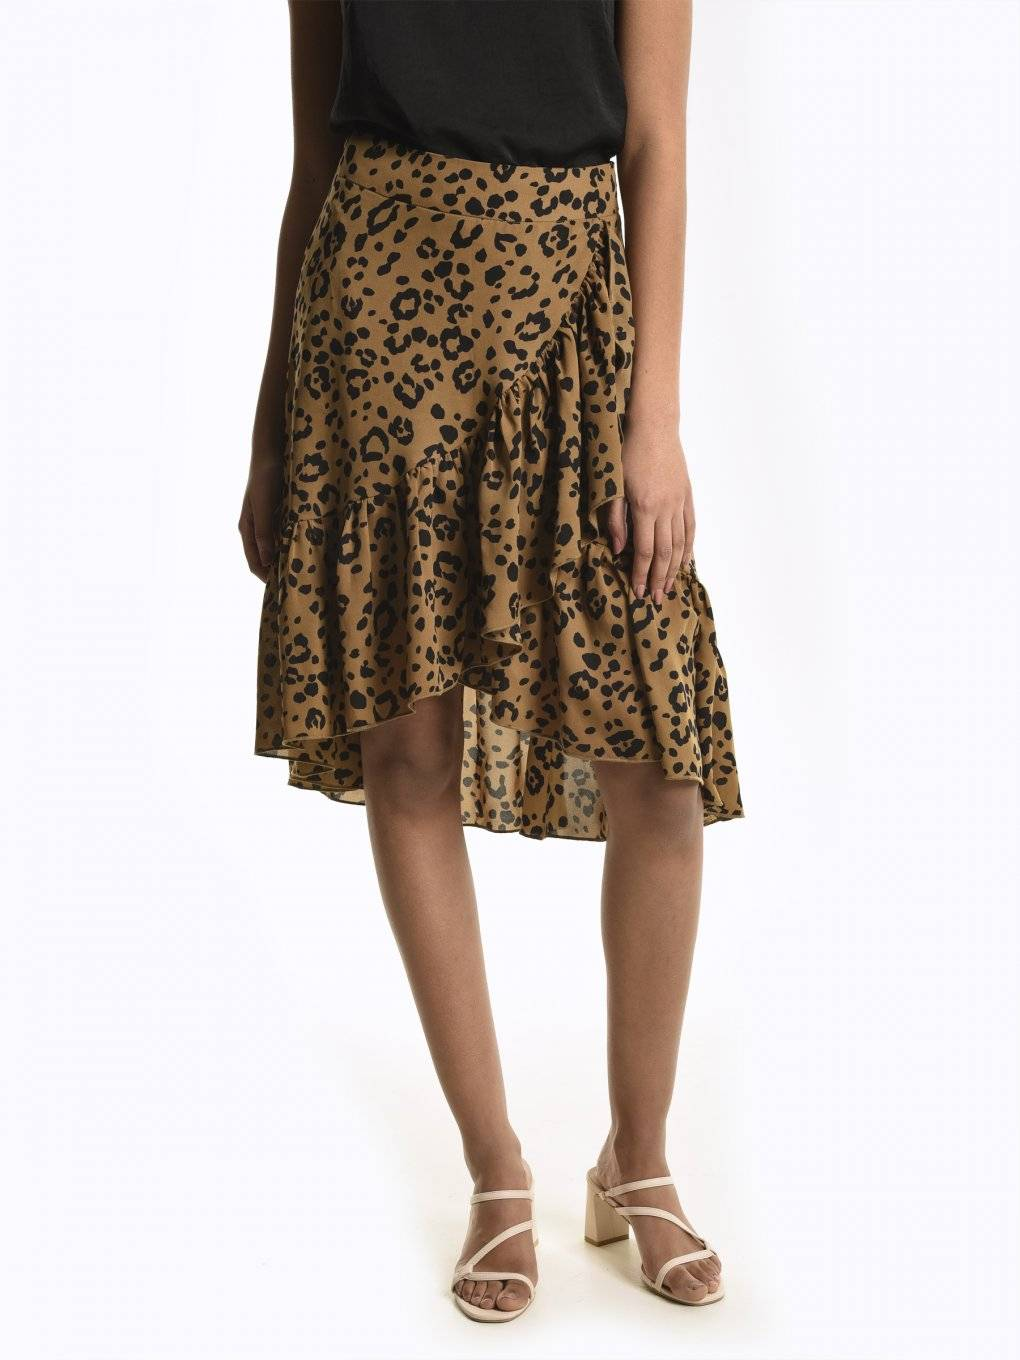 Animal print skirt with ruffles